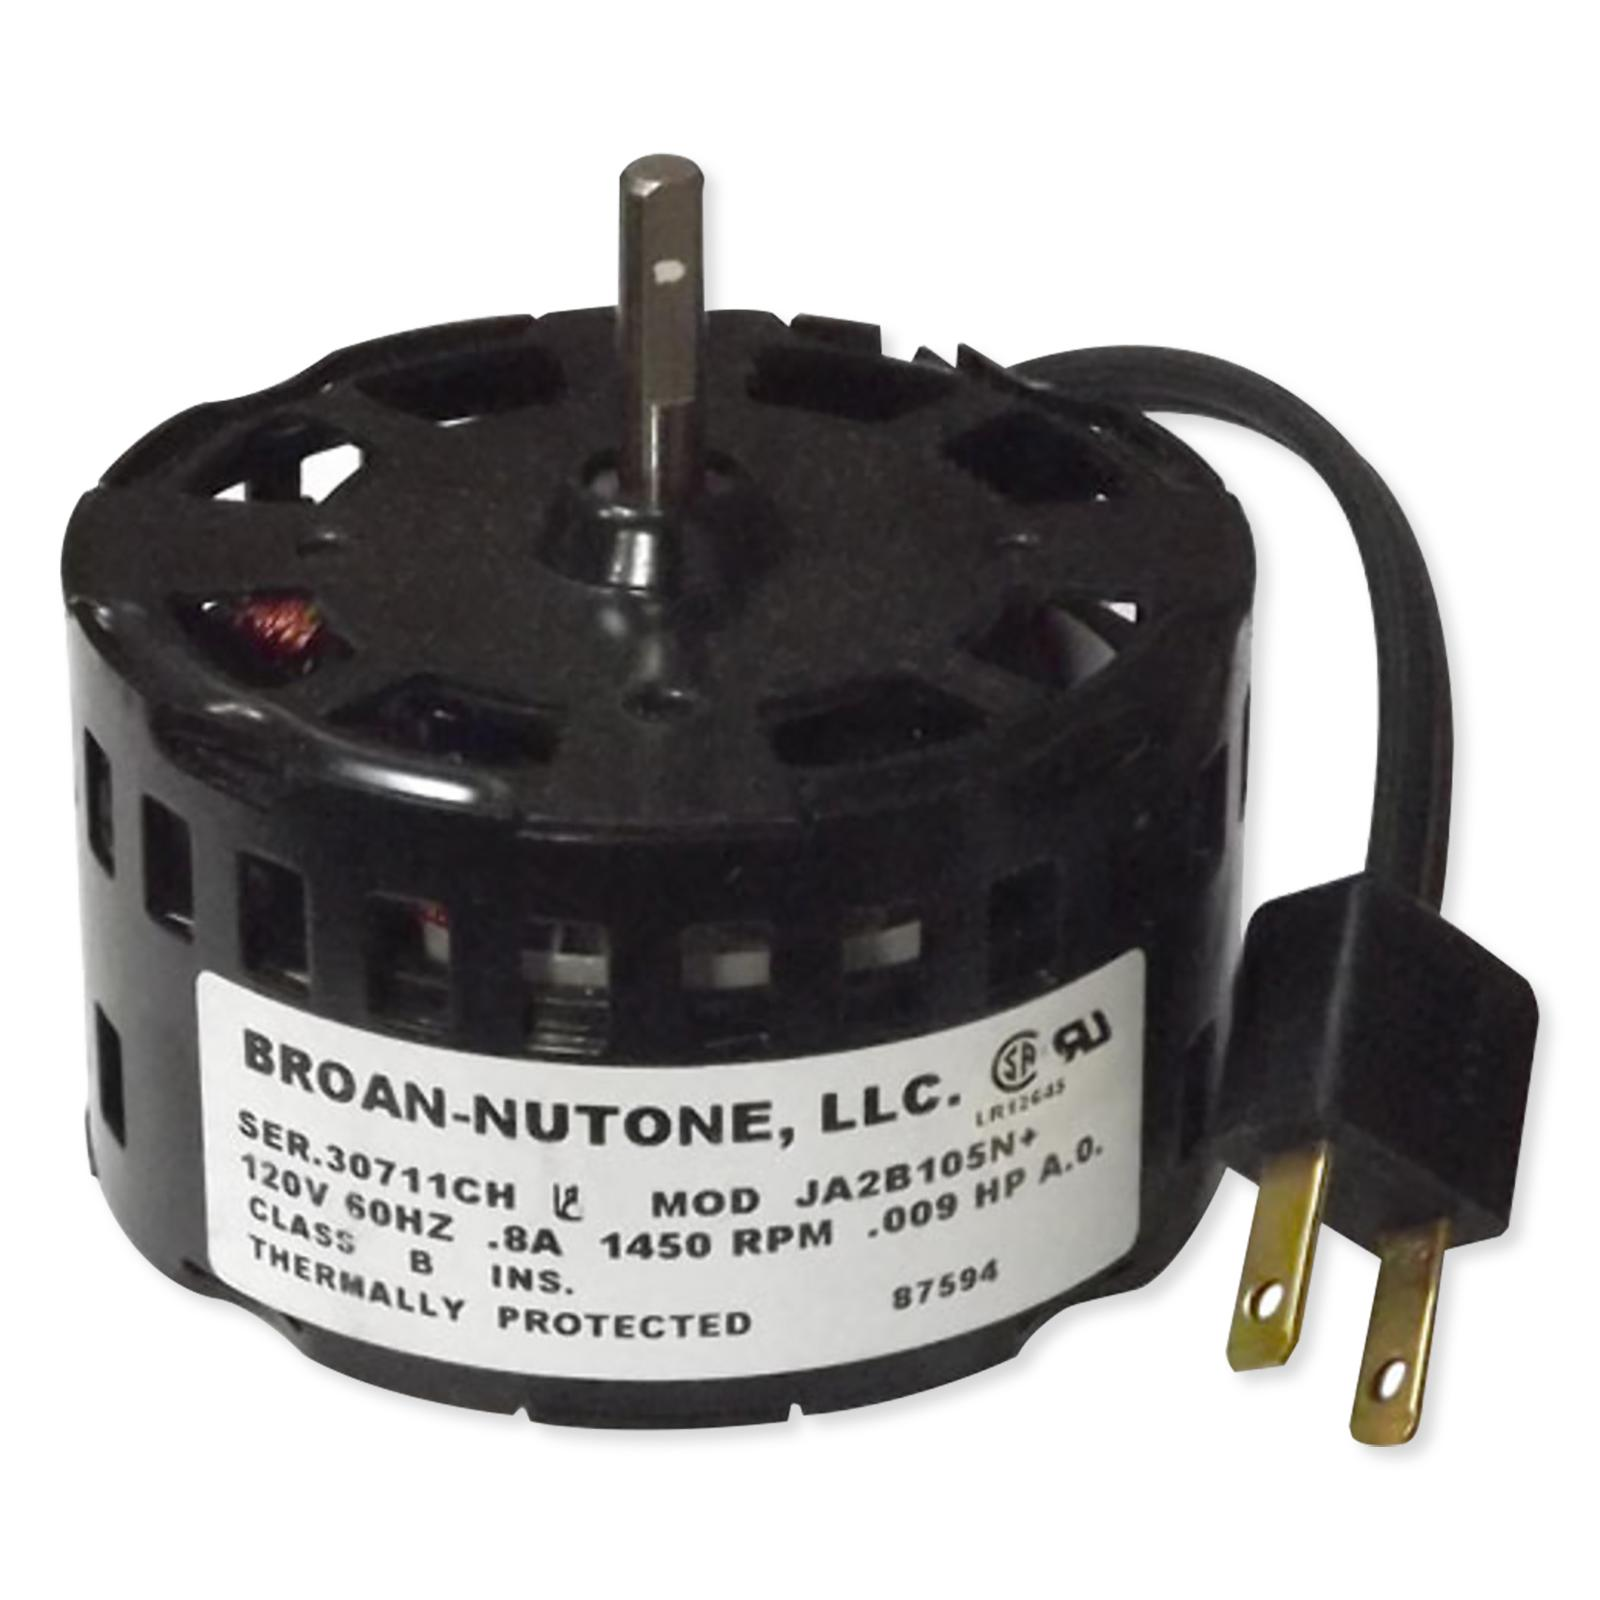 Nutone Replacement Fan Motor For Model 671r